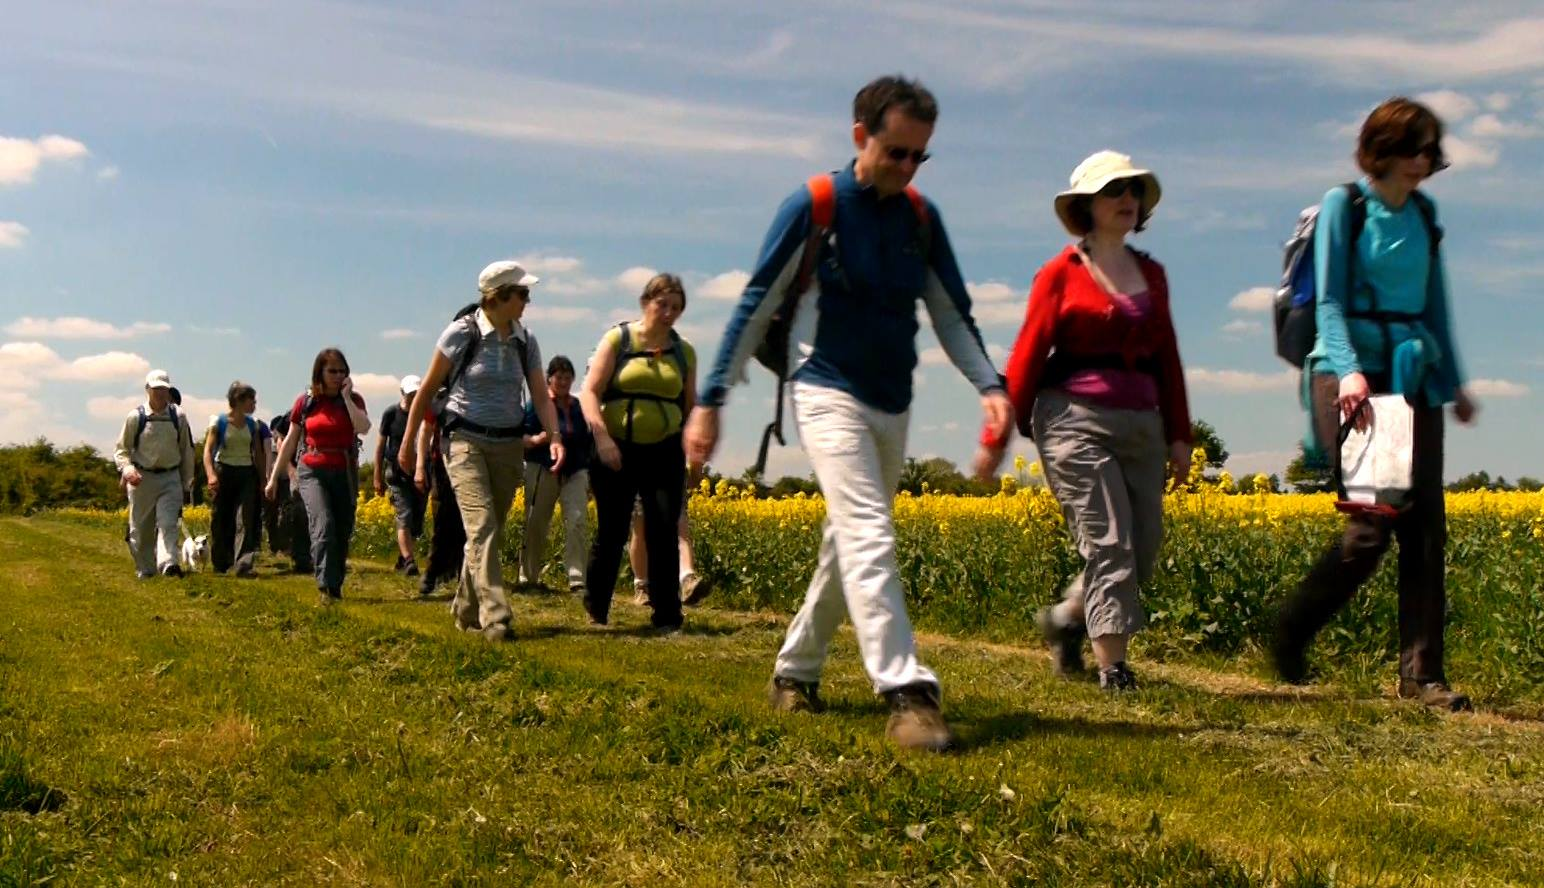 Free Greenwich walking events set for May